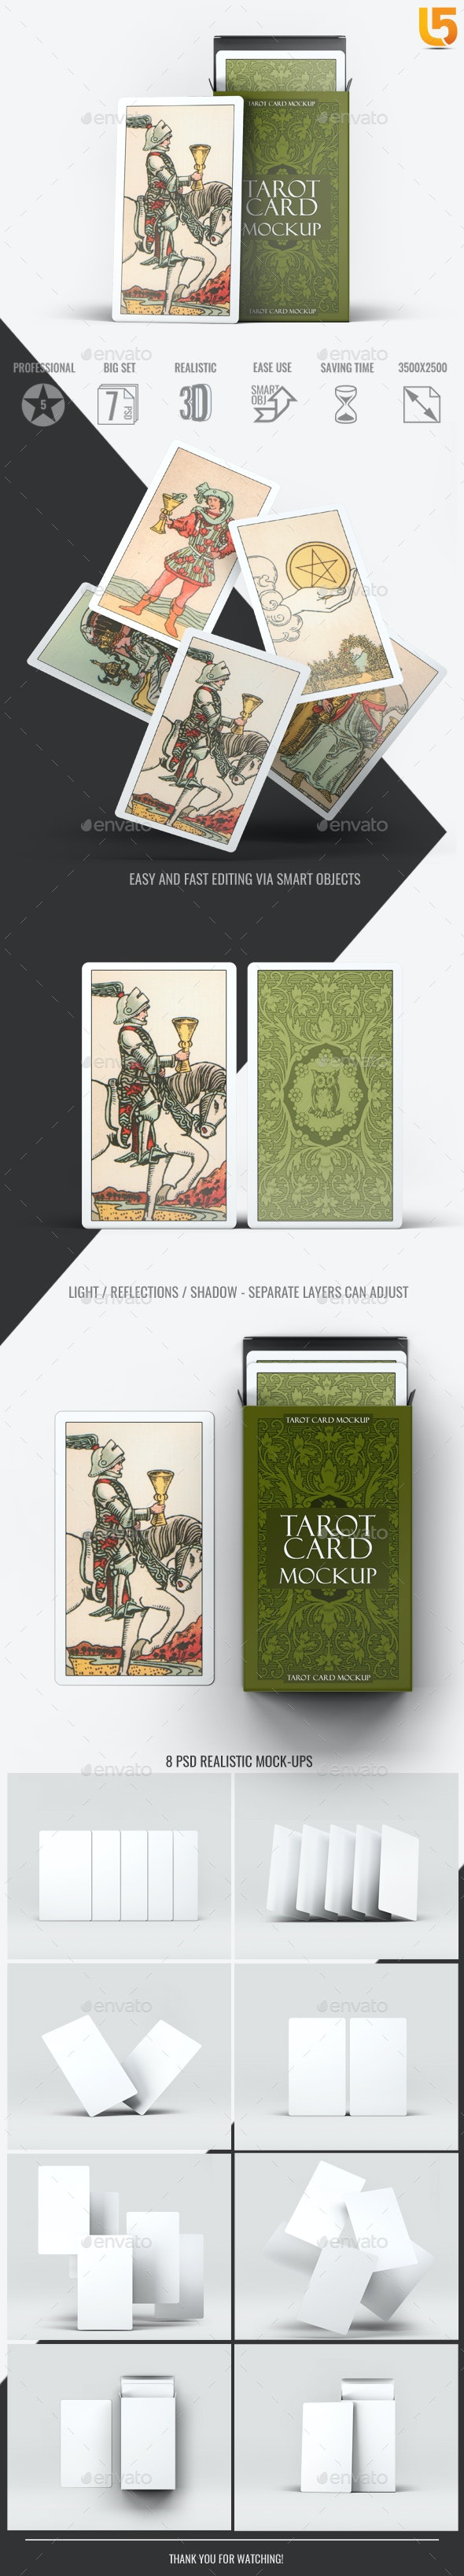 Tarot Card Mock-Up - Miscellaneous Print